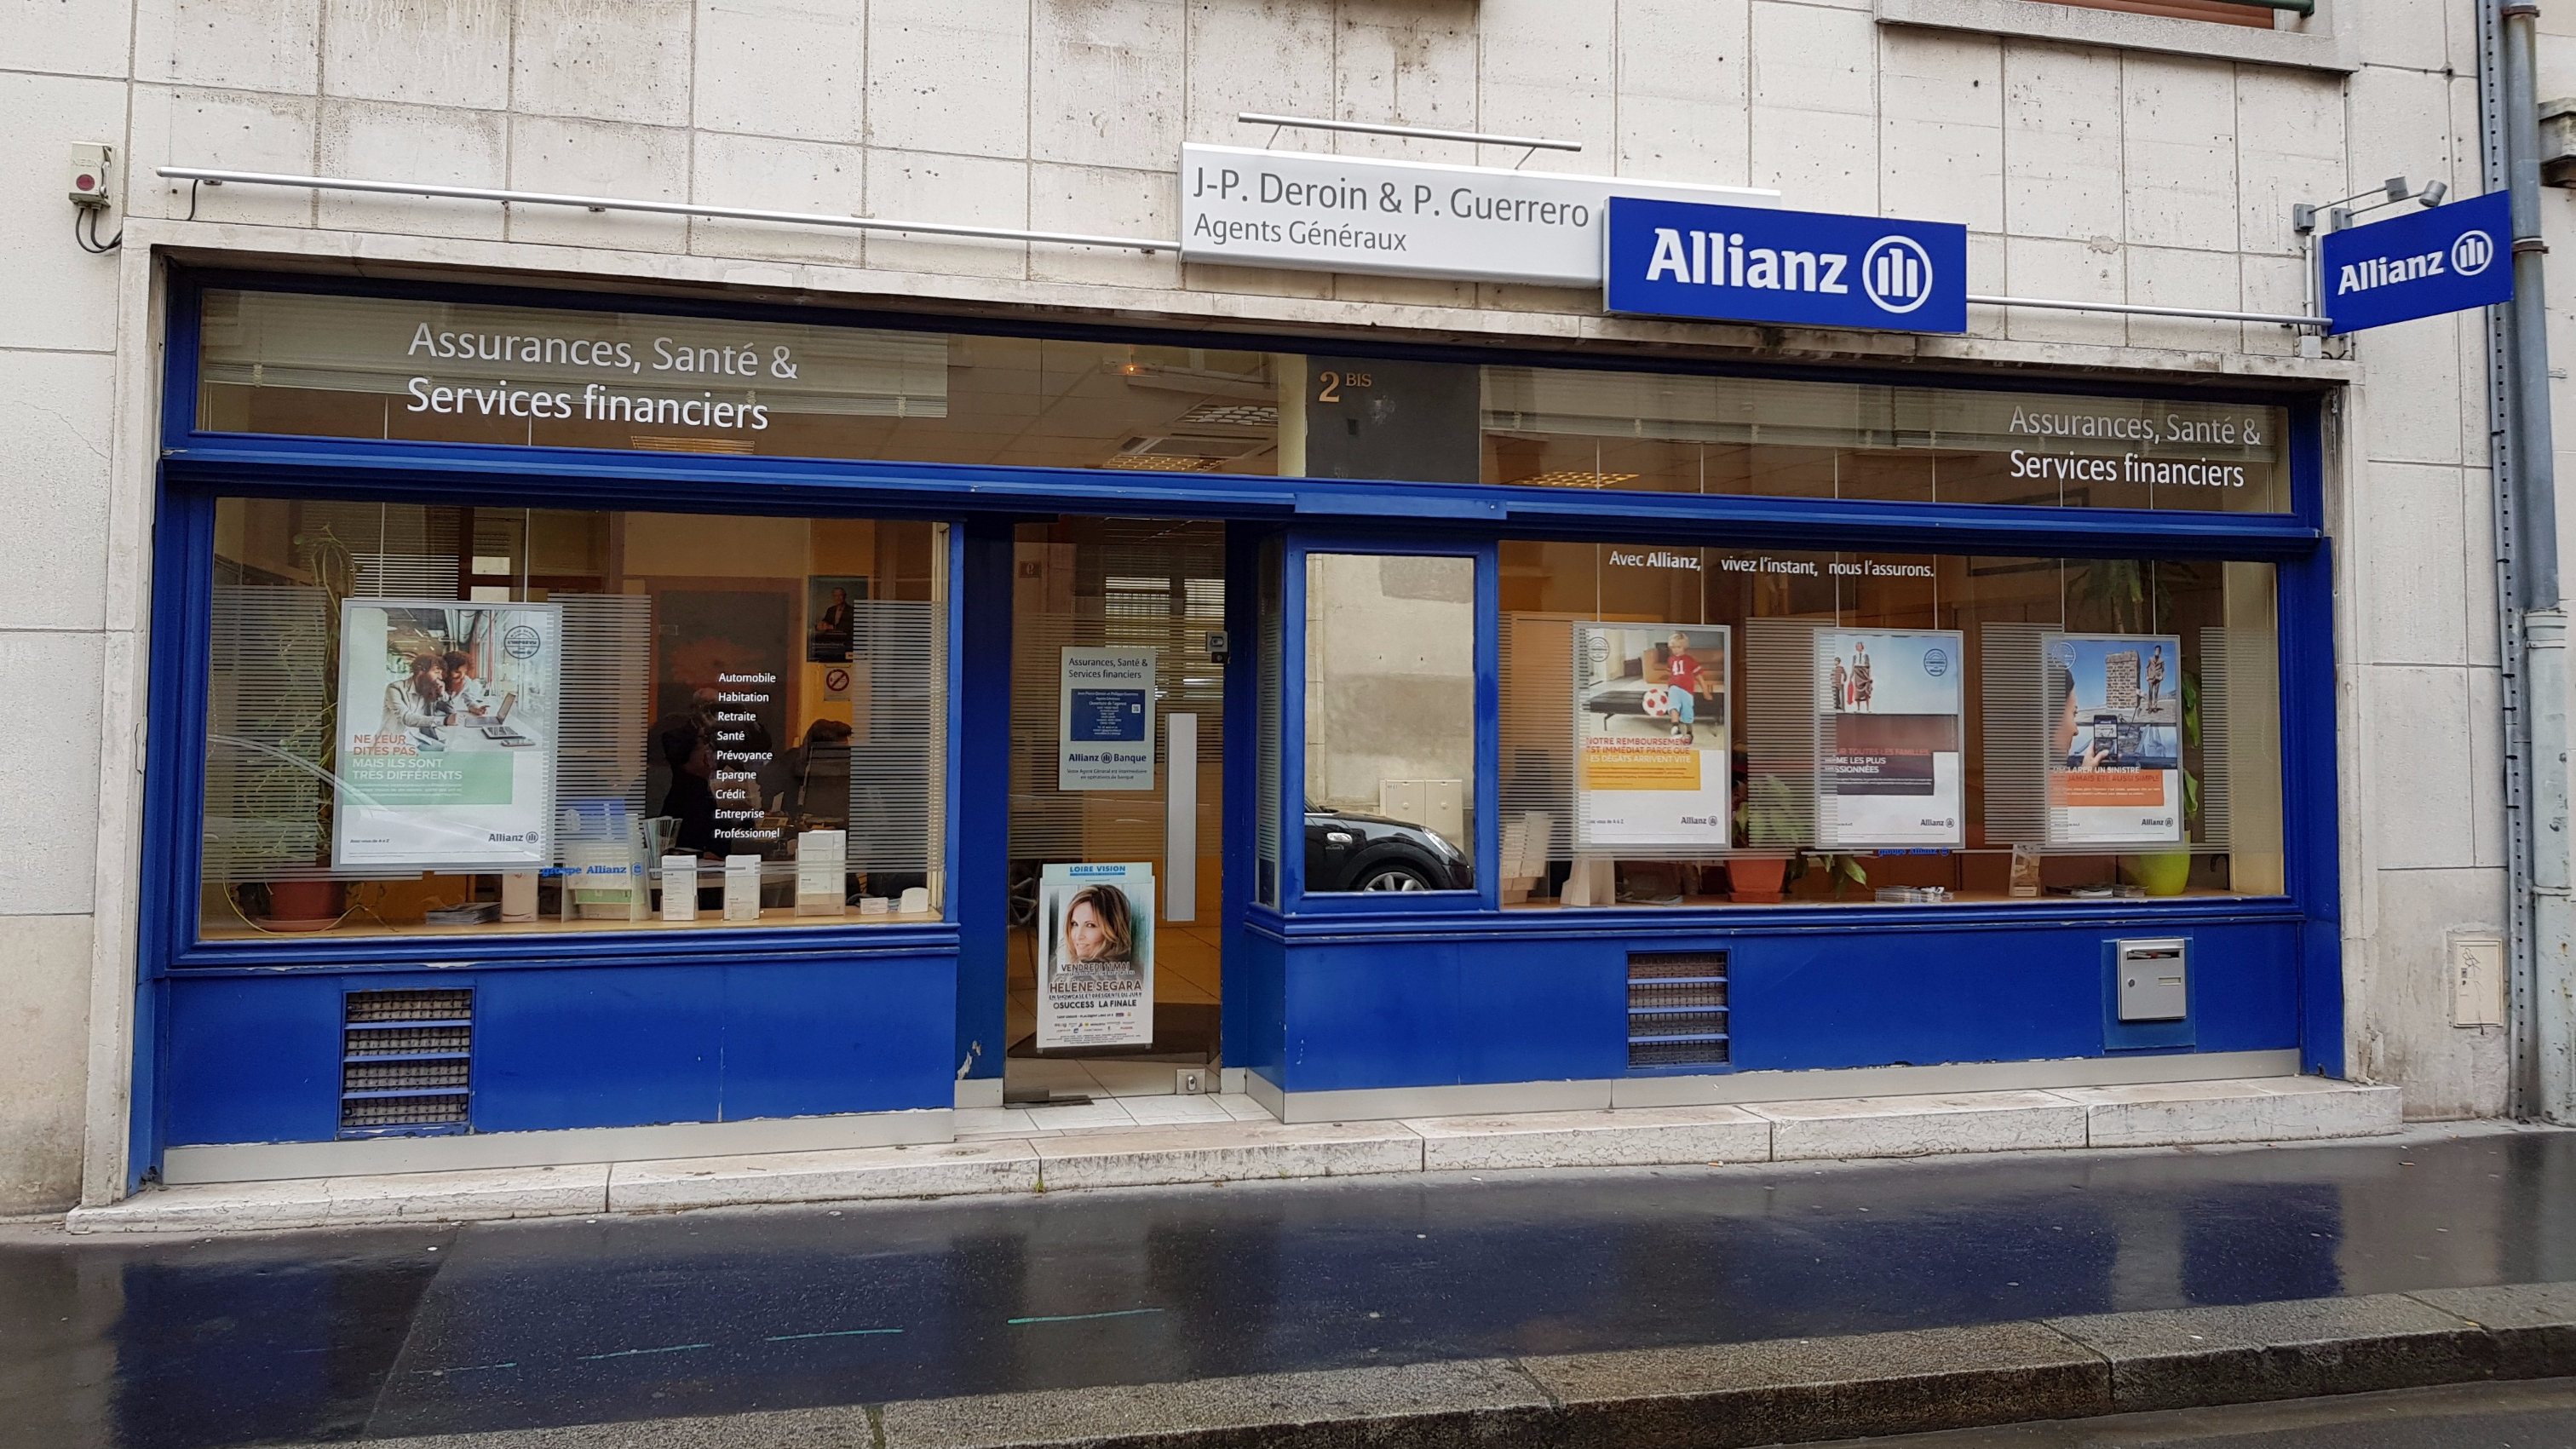 Allianz Orleans - THEOBALD & GAUCHER